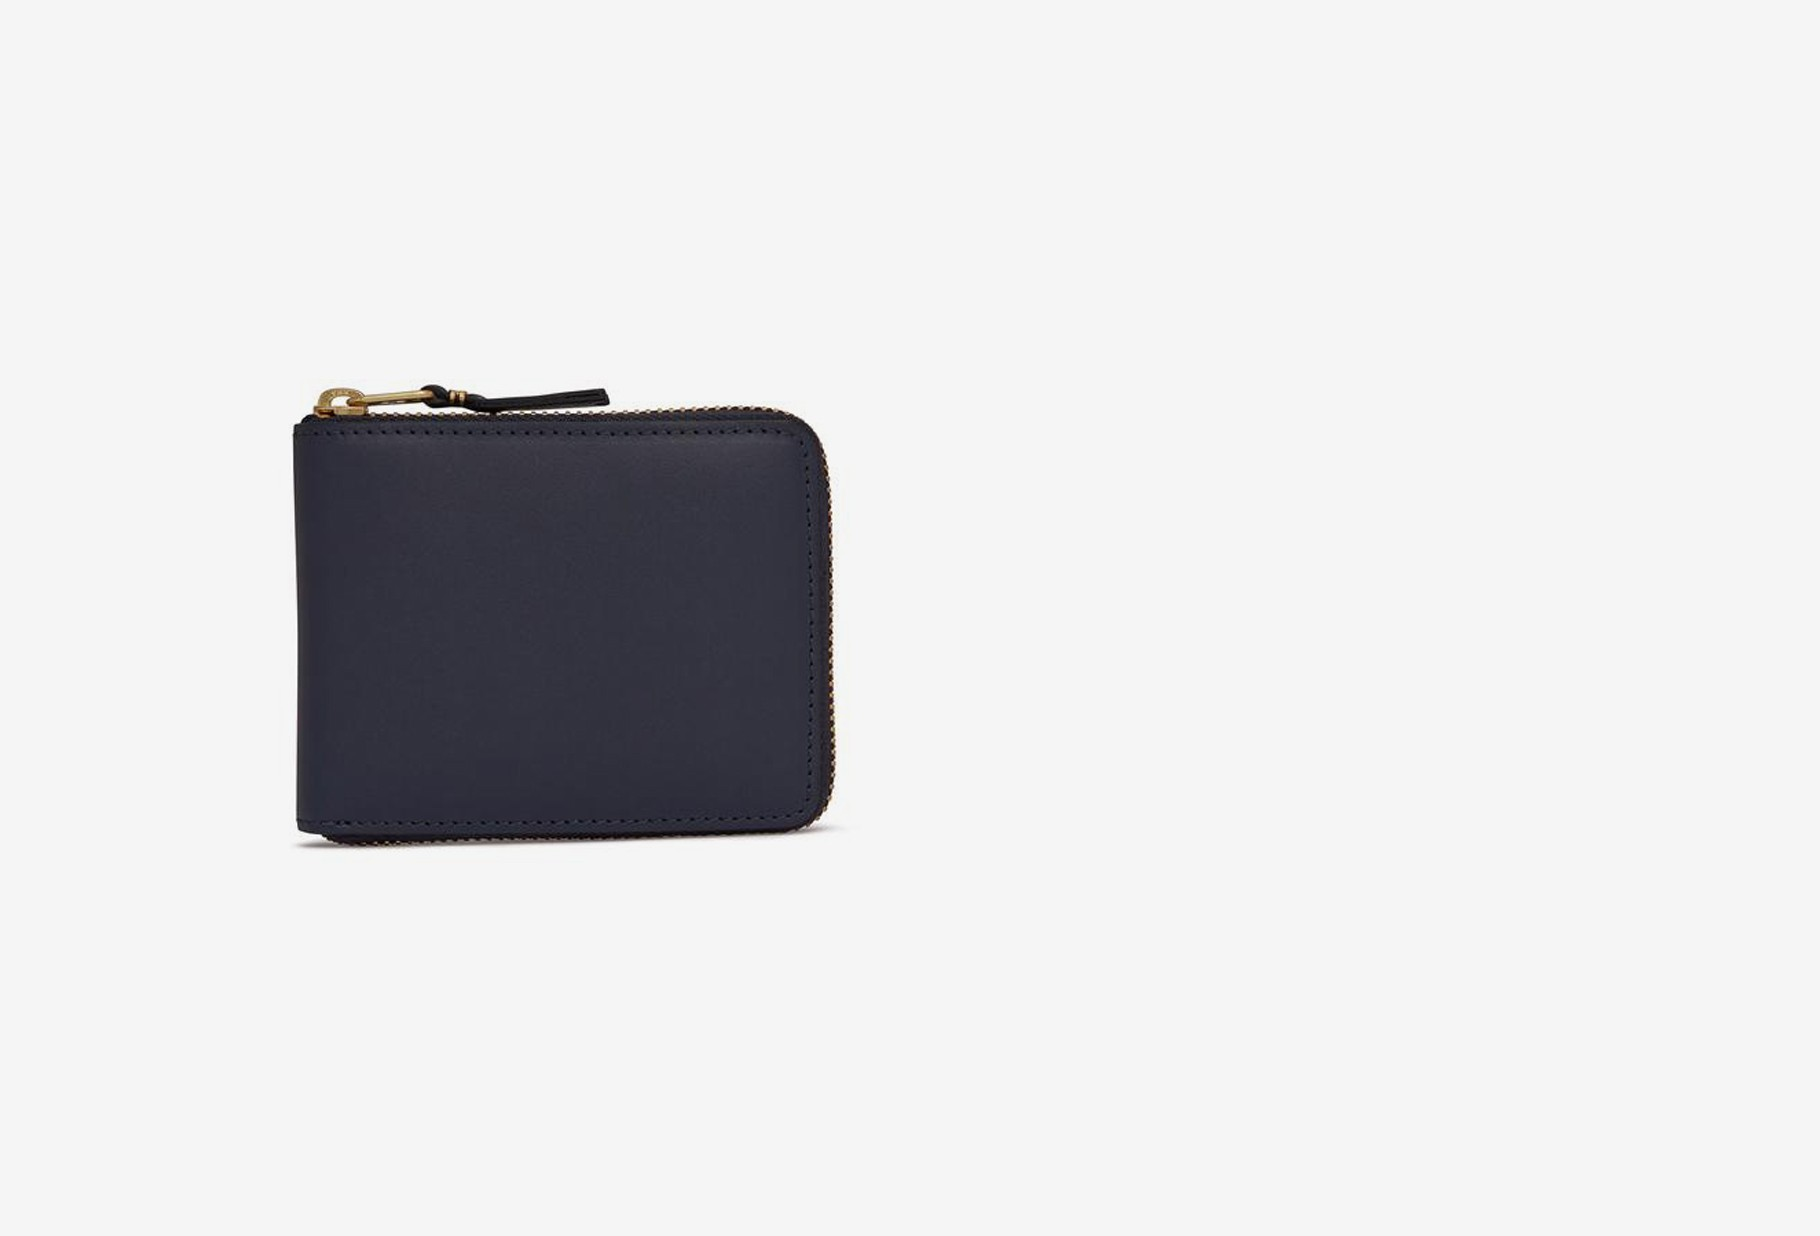 COMME DES GARÇONS WALLETS / Cdg leather wallet classic Sa7100 navy